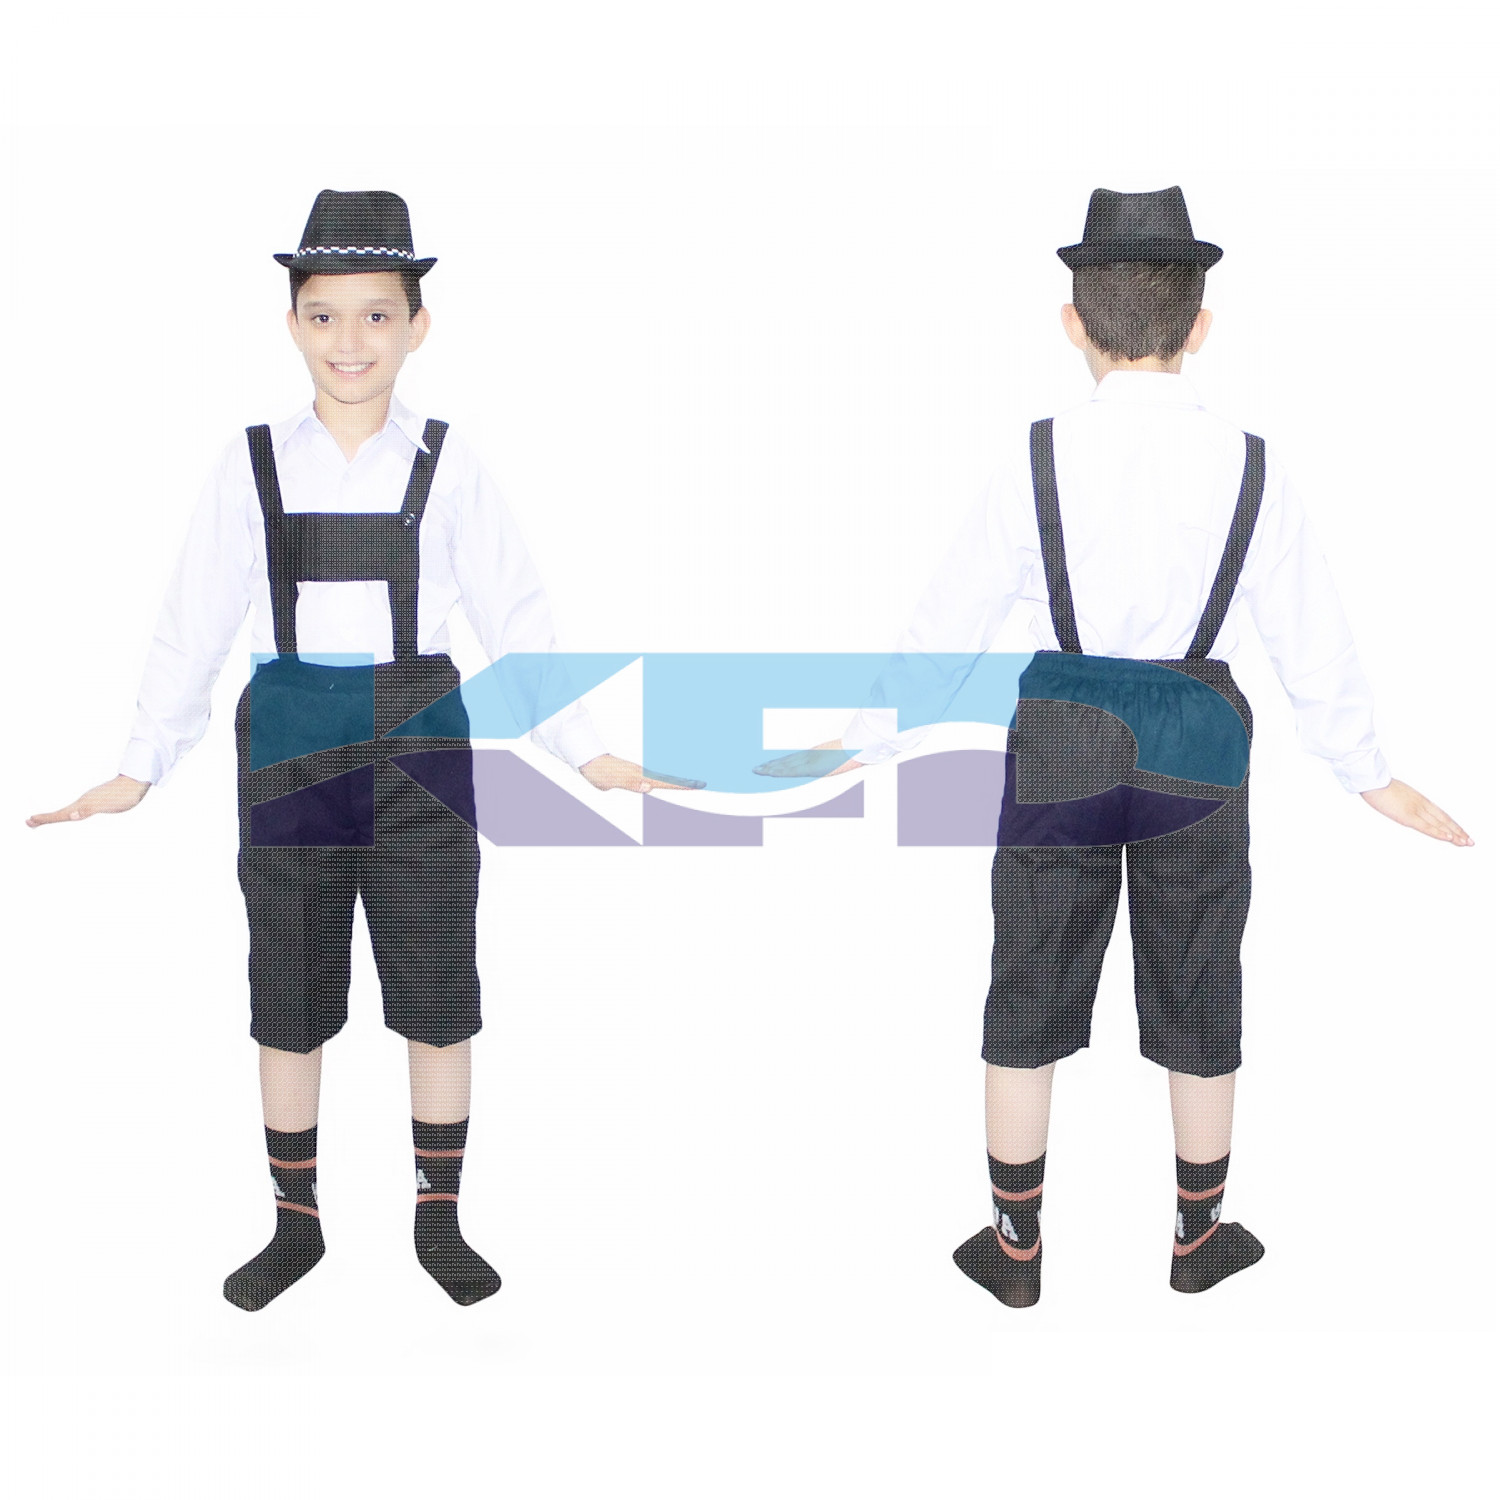 German Boy/Lederhosen Boy Costume/Oktoberfest Costumes/Alpine Boy Costume/German Bavarian Costume For Boy/Hansel German Style/Theme Party/Competition/Stage Shows/Birthday Party Dress